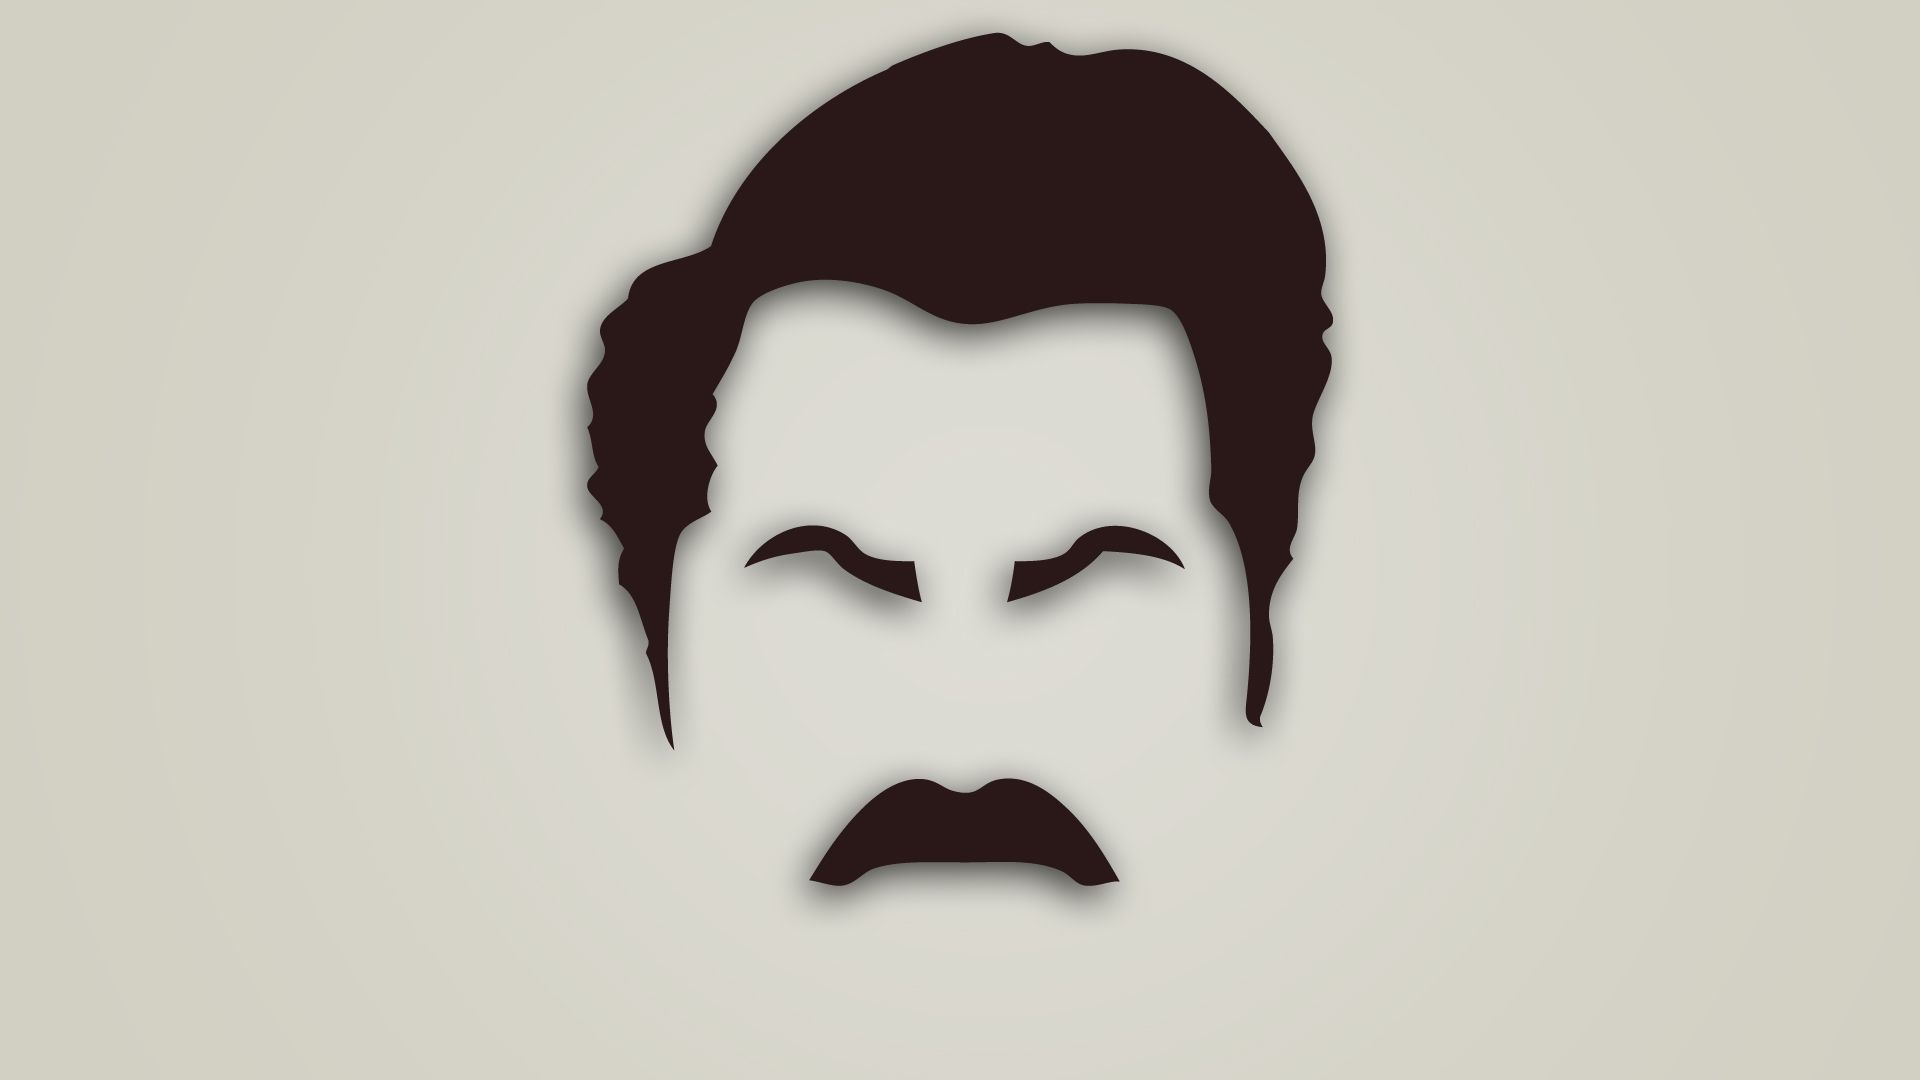 Ron Swanson - Parks and Recreation wallpaper